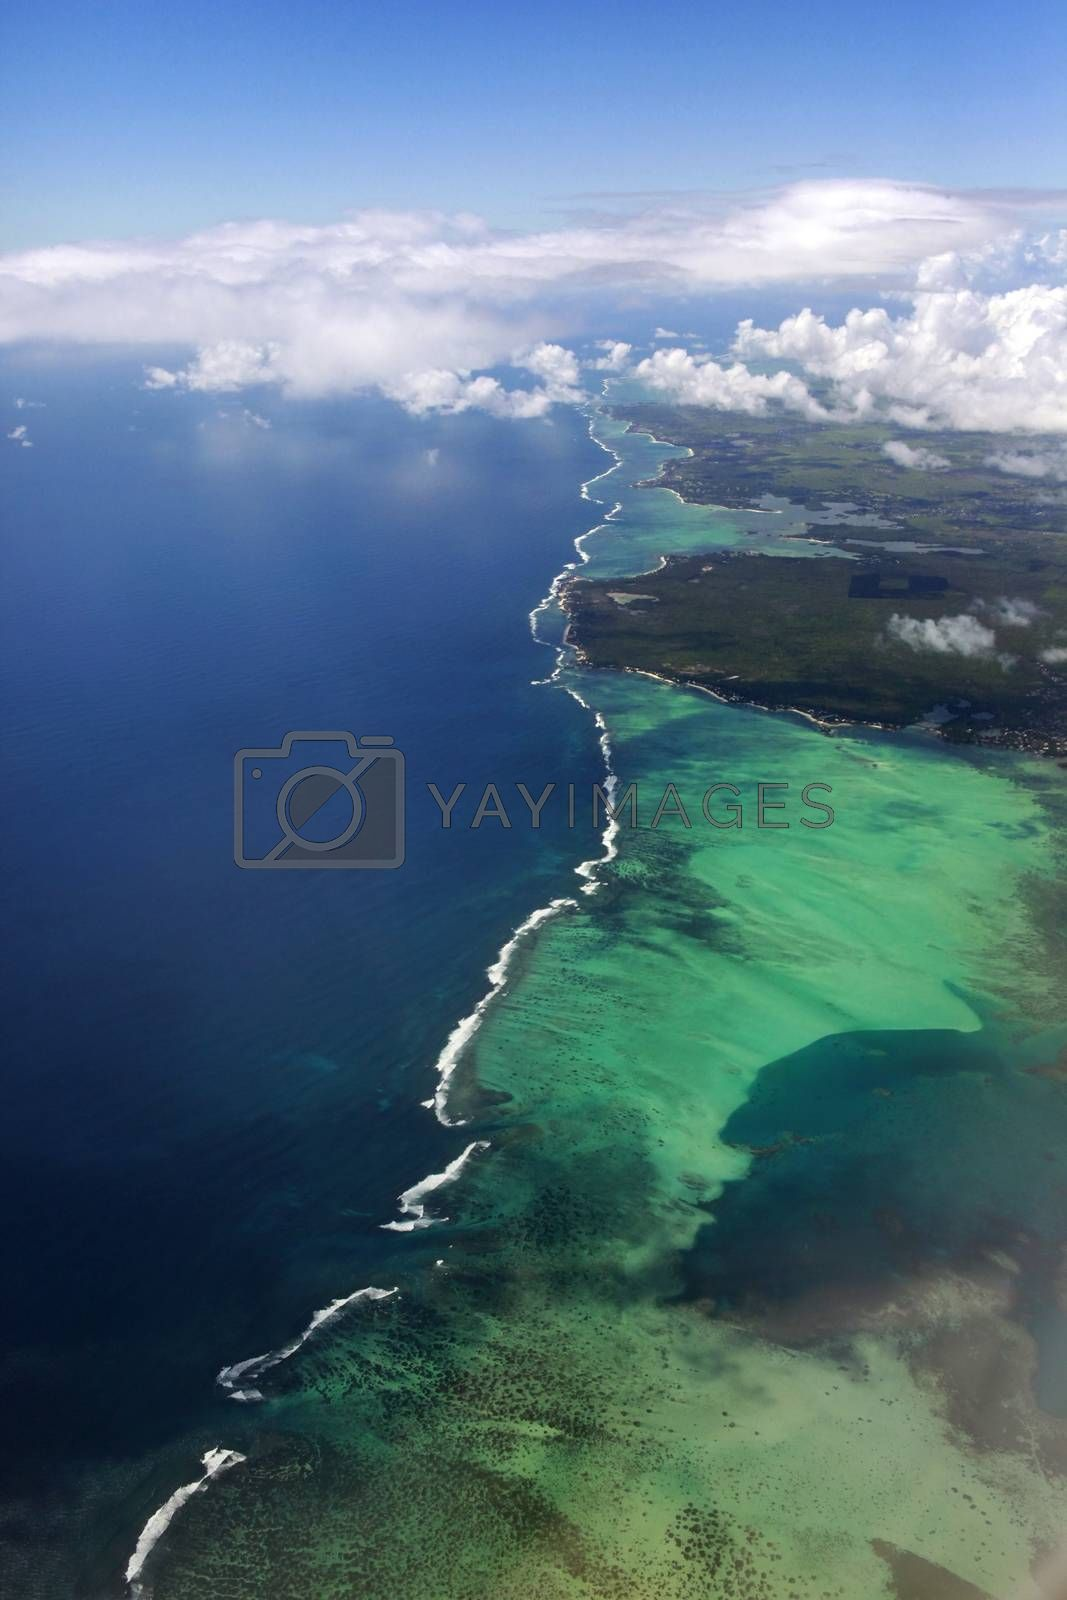 Mauritius sky view showing  by friday